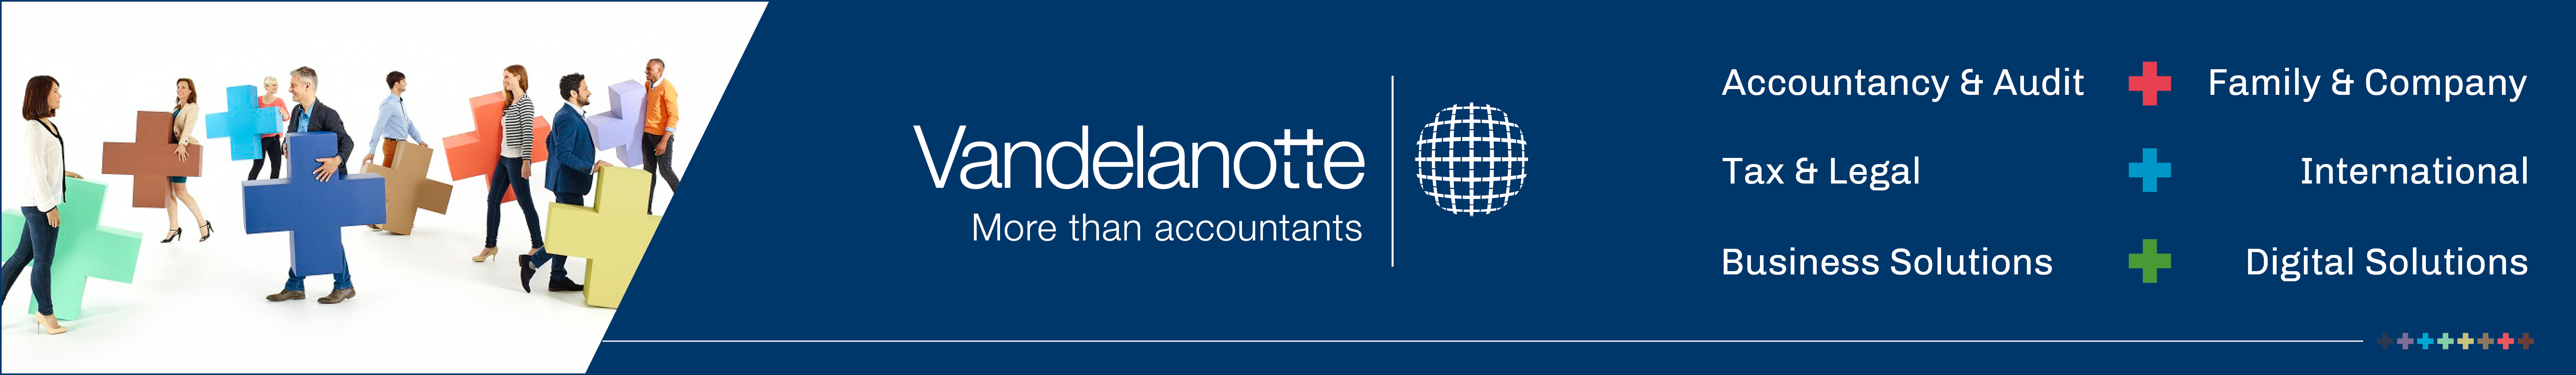 Vandelanotte accountants for franchising